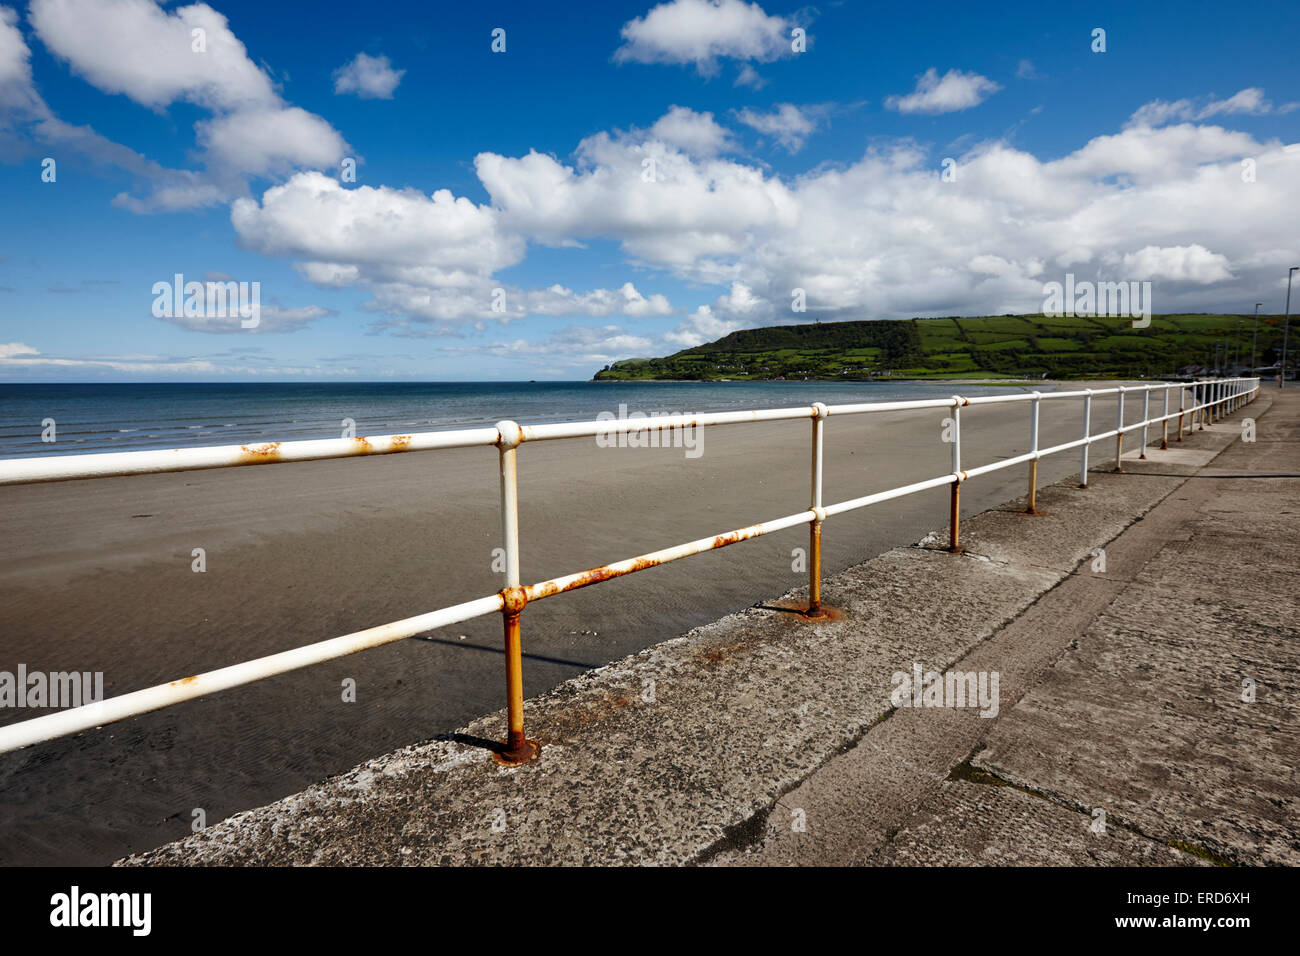 railings along seafront at Carnlough beach County Antrim Northern Ireland UK - Stock Image